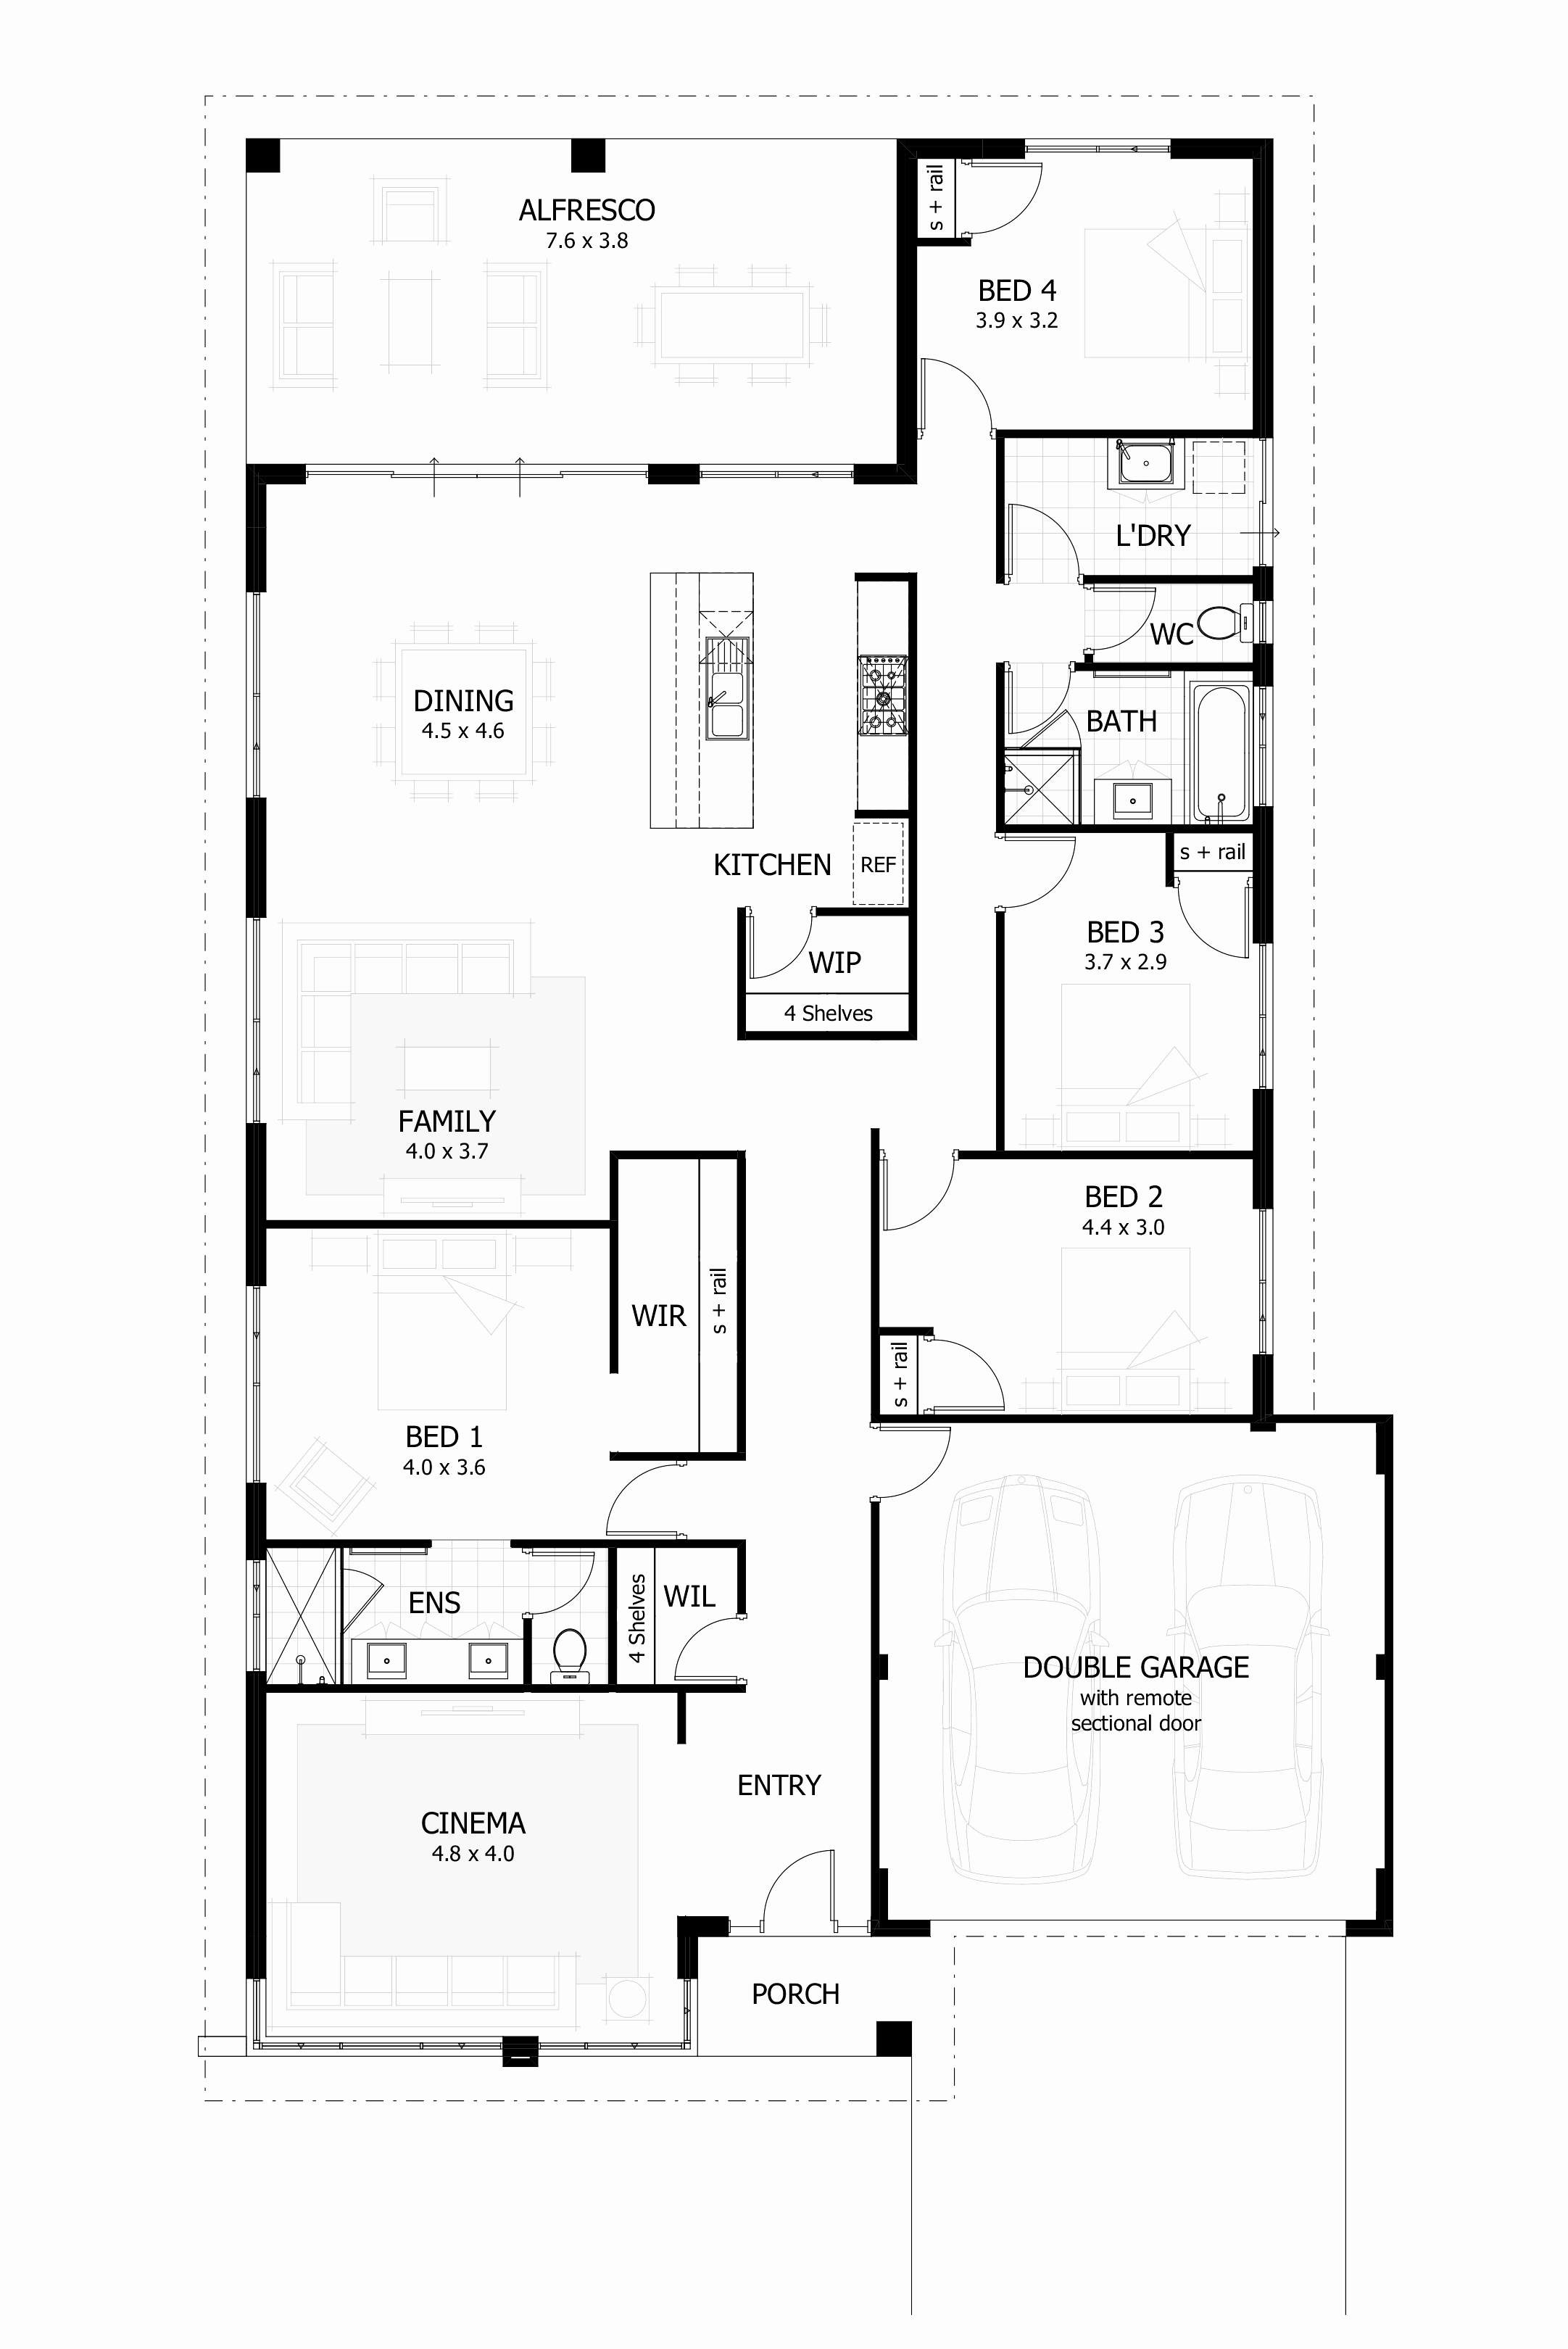 Drawing House Plans Free Elegant Beautiful 4 Bedroom House Plans Pdf Free Download Unique 3